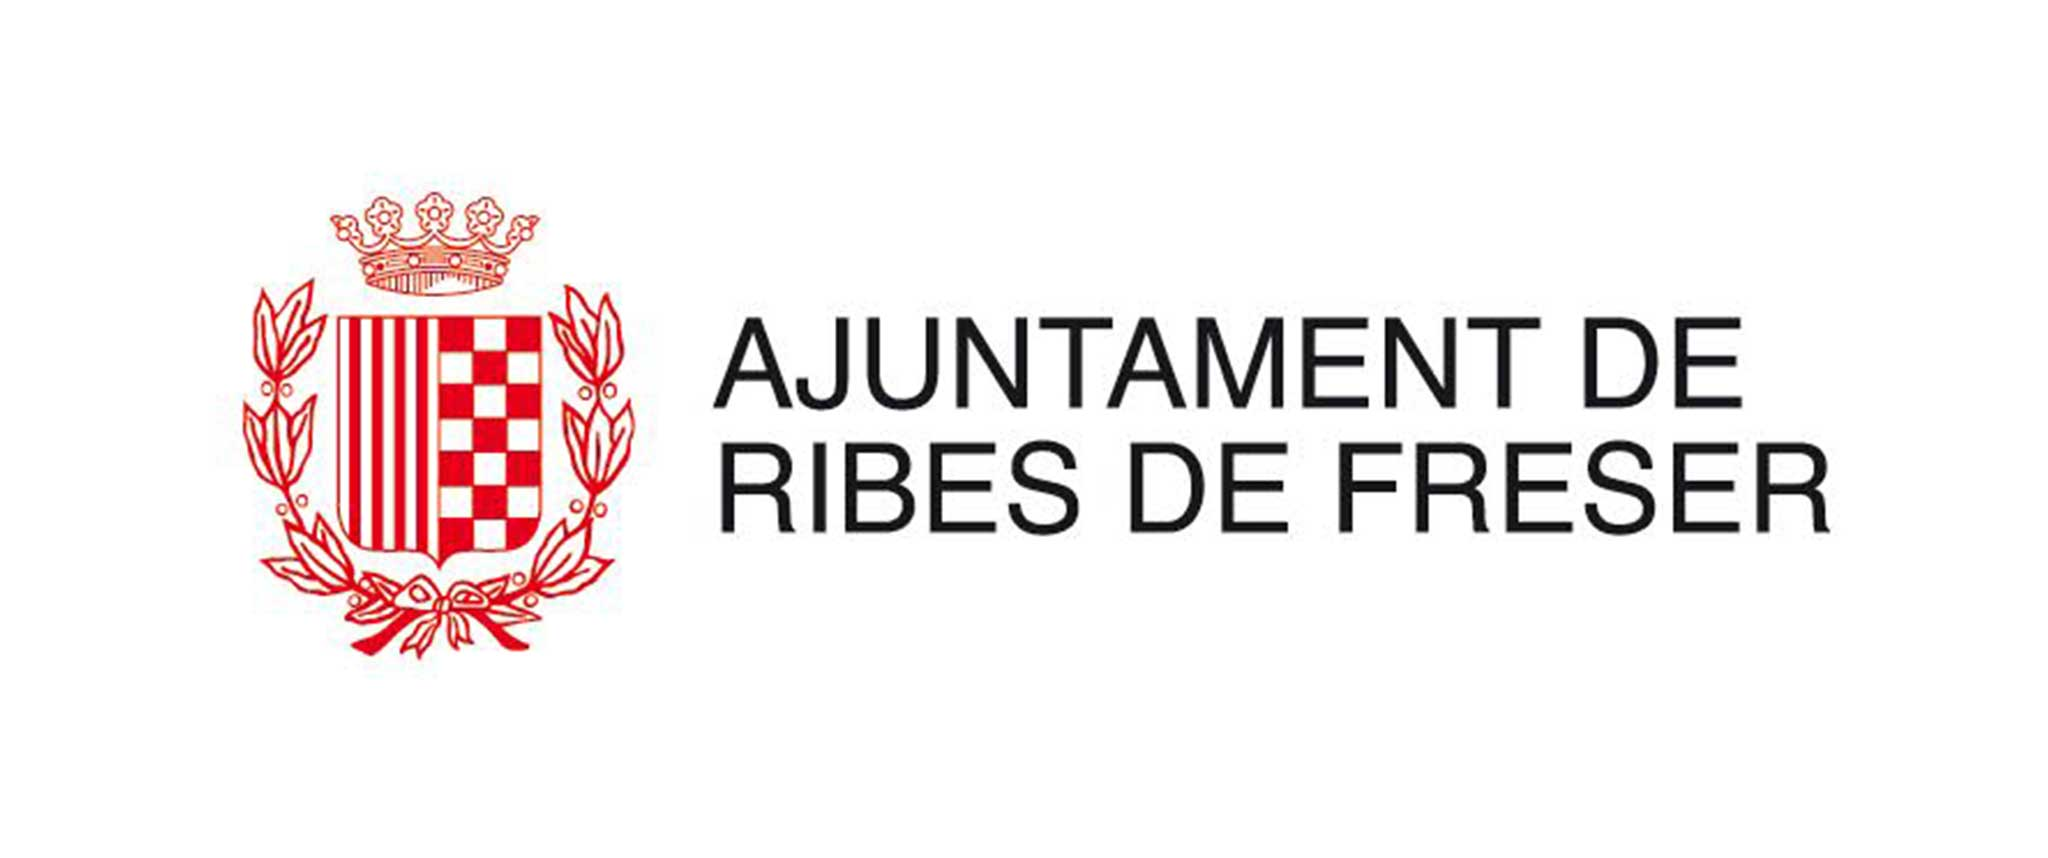 logo-ajuntament-de-ribes-de-freser-scope-2048858